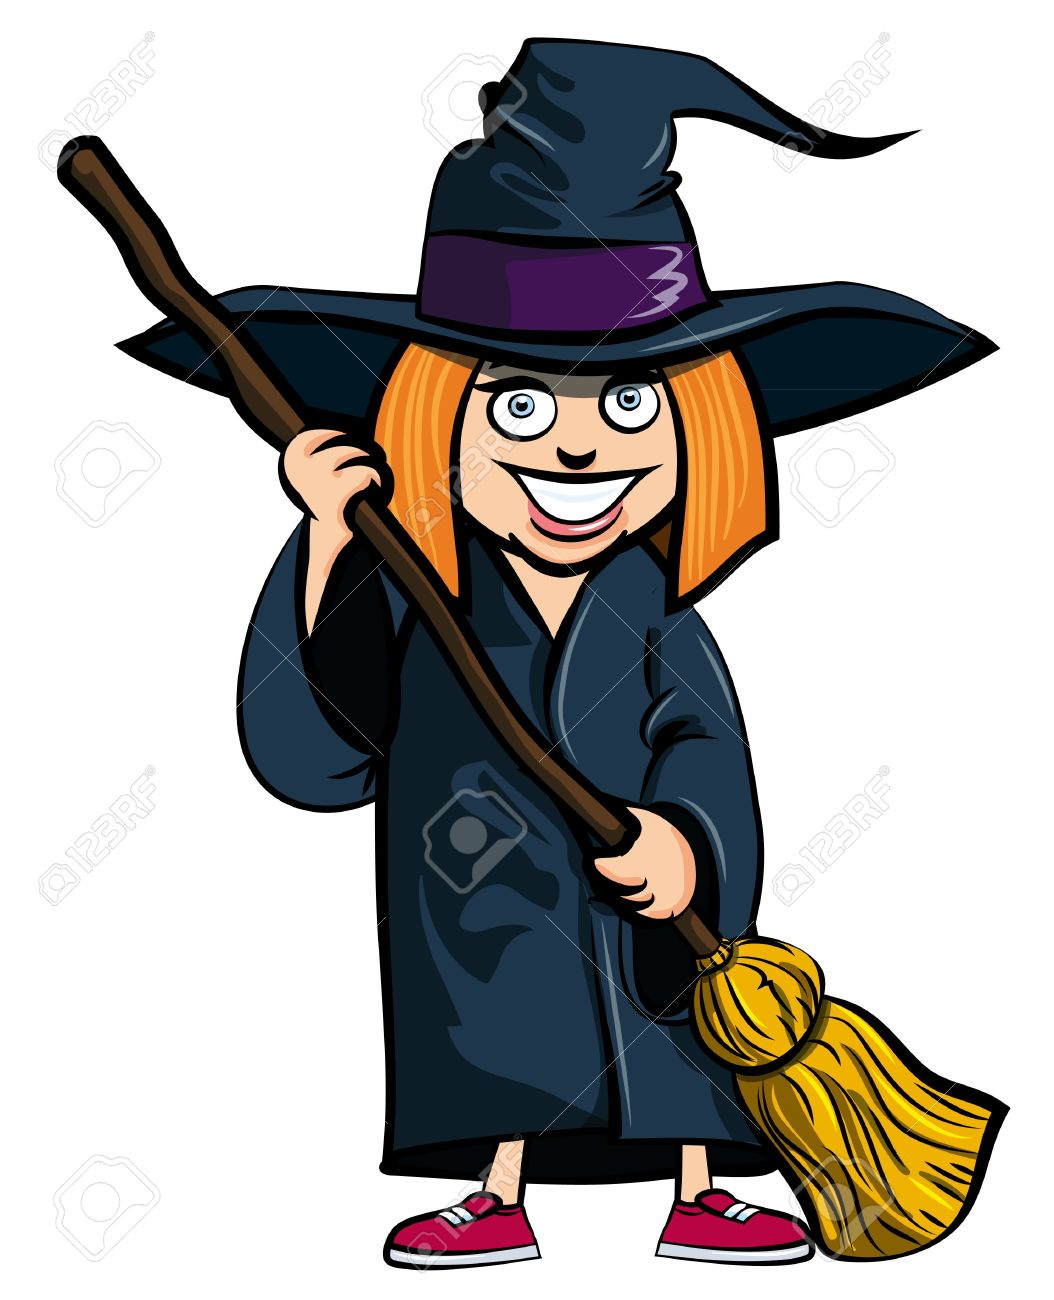 Cartoon of little girl in a witches costume. She is ready for trick or treating  sc 1 st  123RF.com & Cartoon Of Little Girl In A Witches Costume. She Is Ready For ...